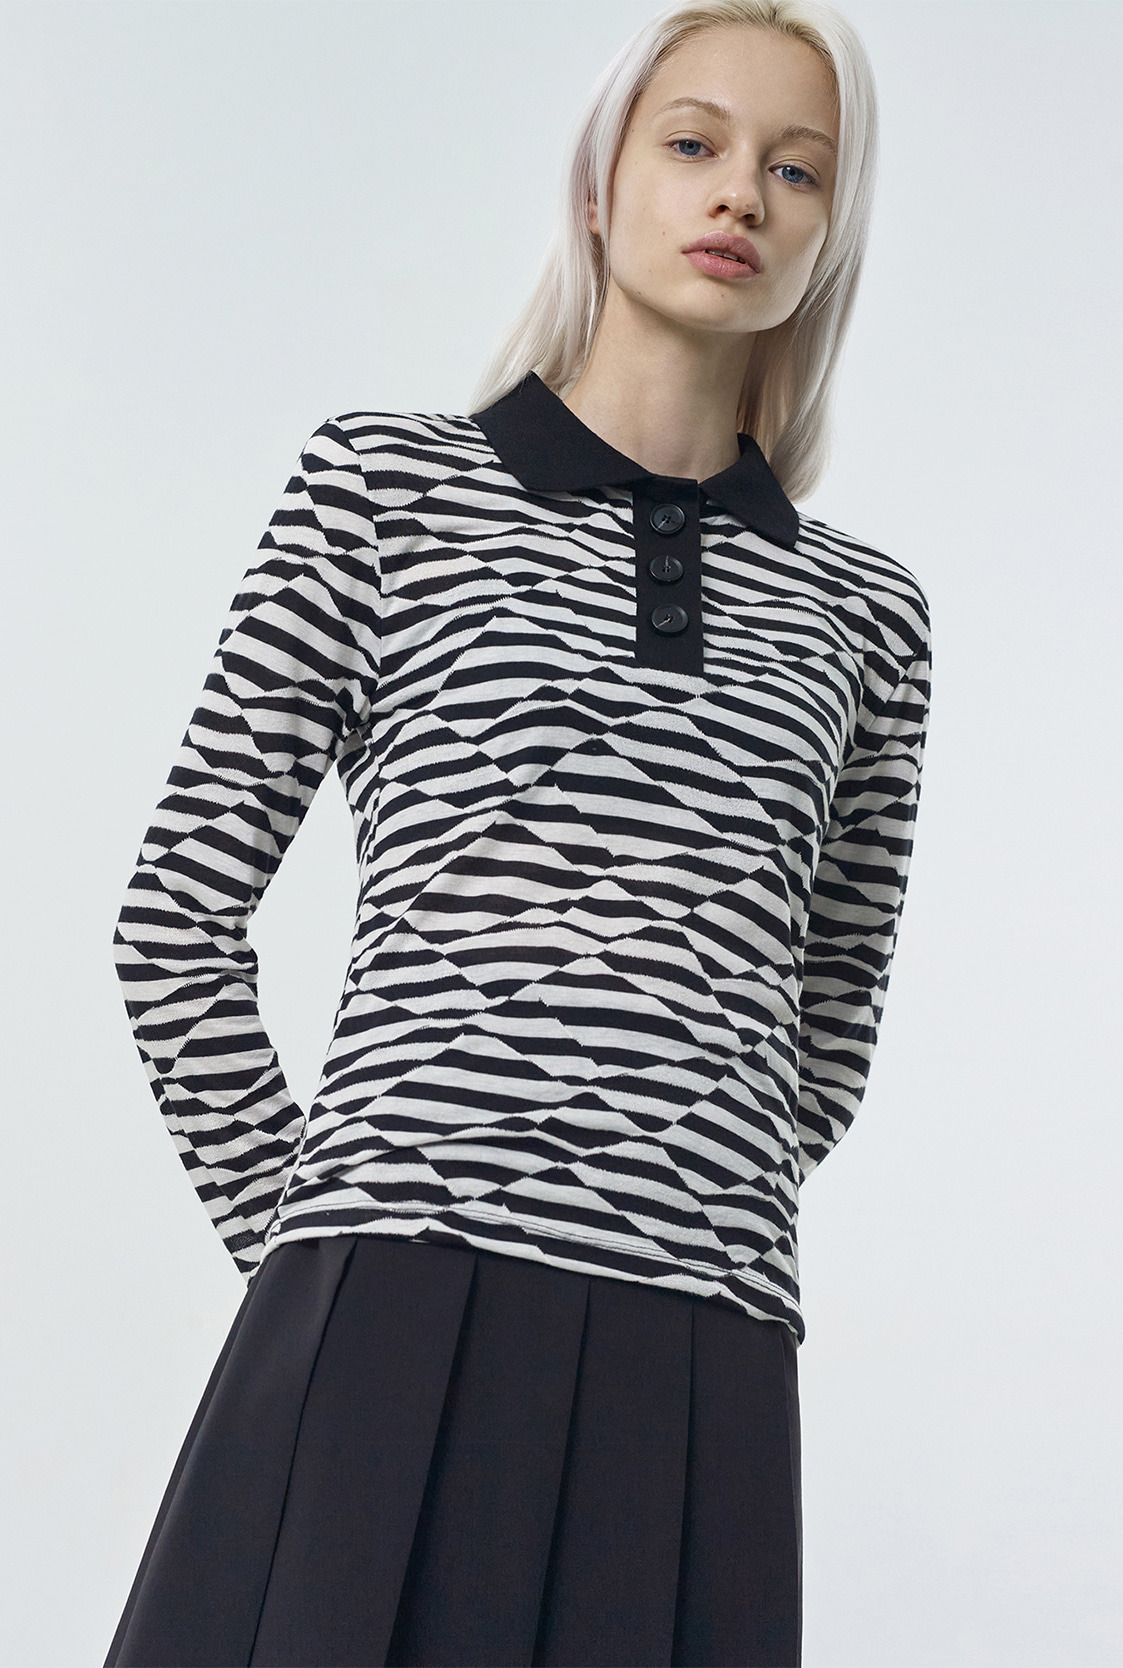 R WAVE PATTERN COLLAR T-SHIRT [2colors]